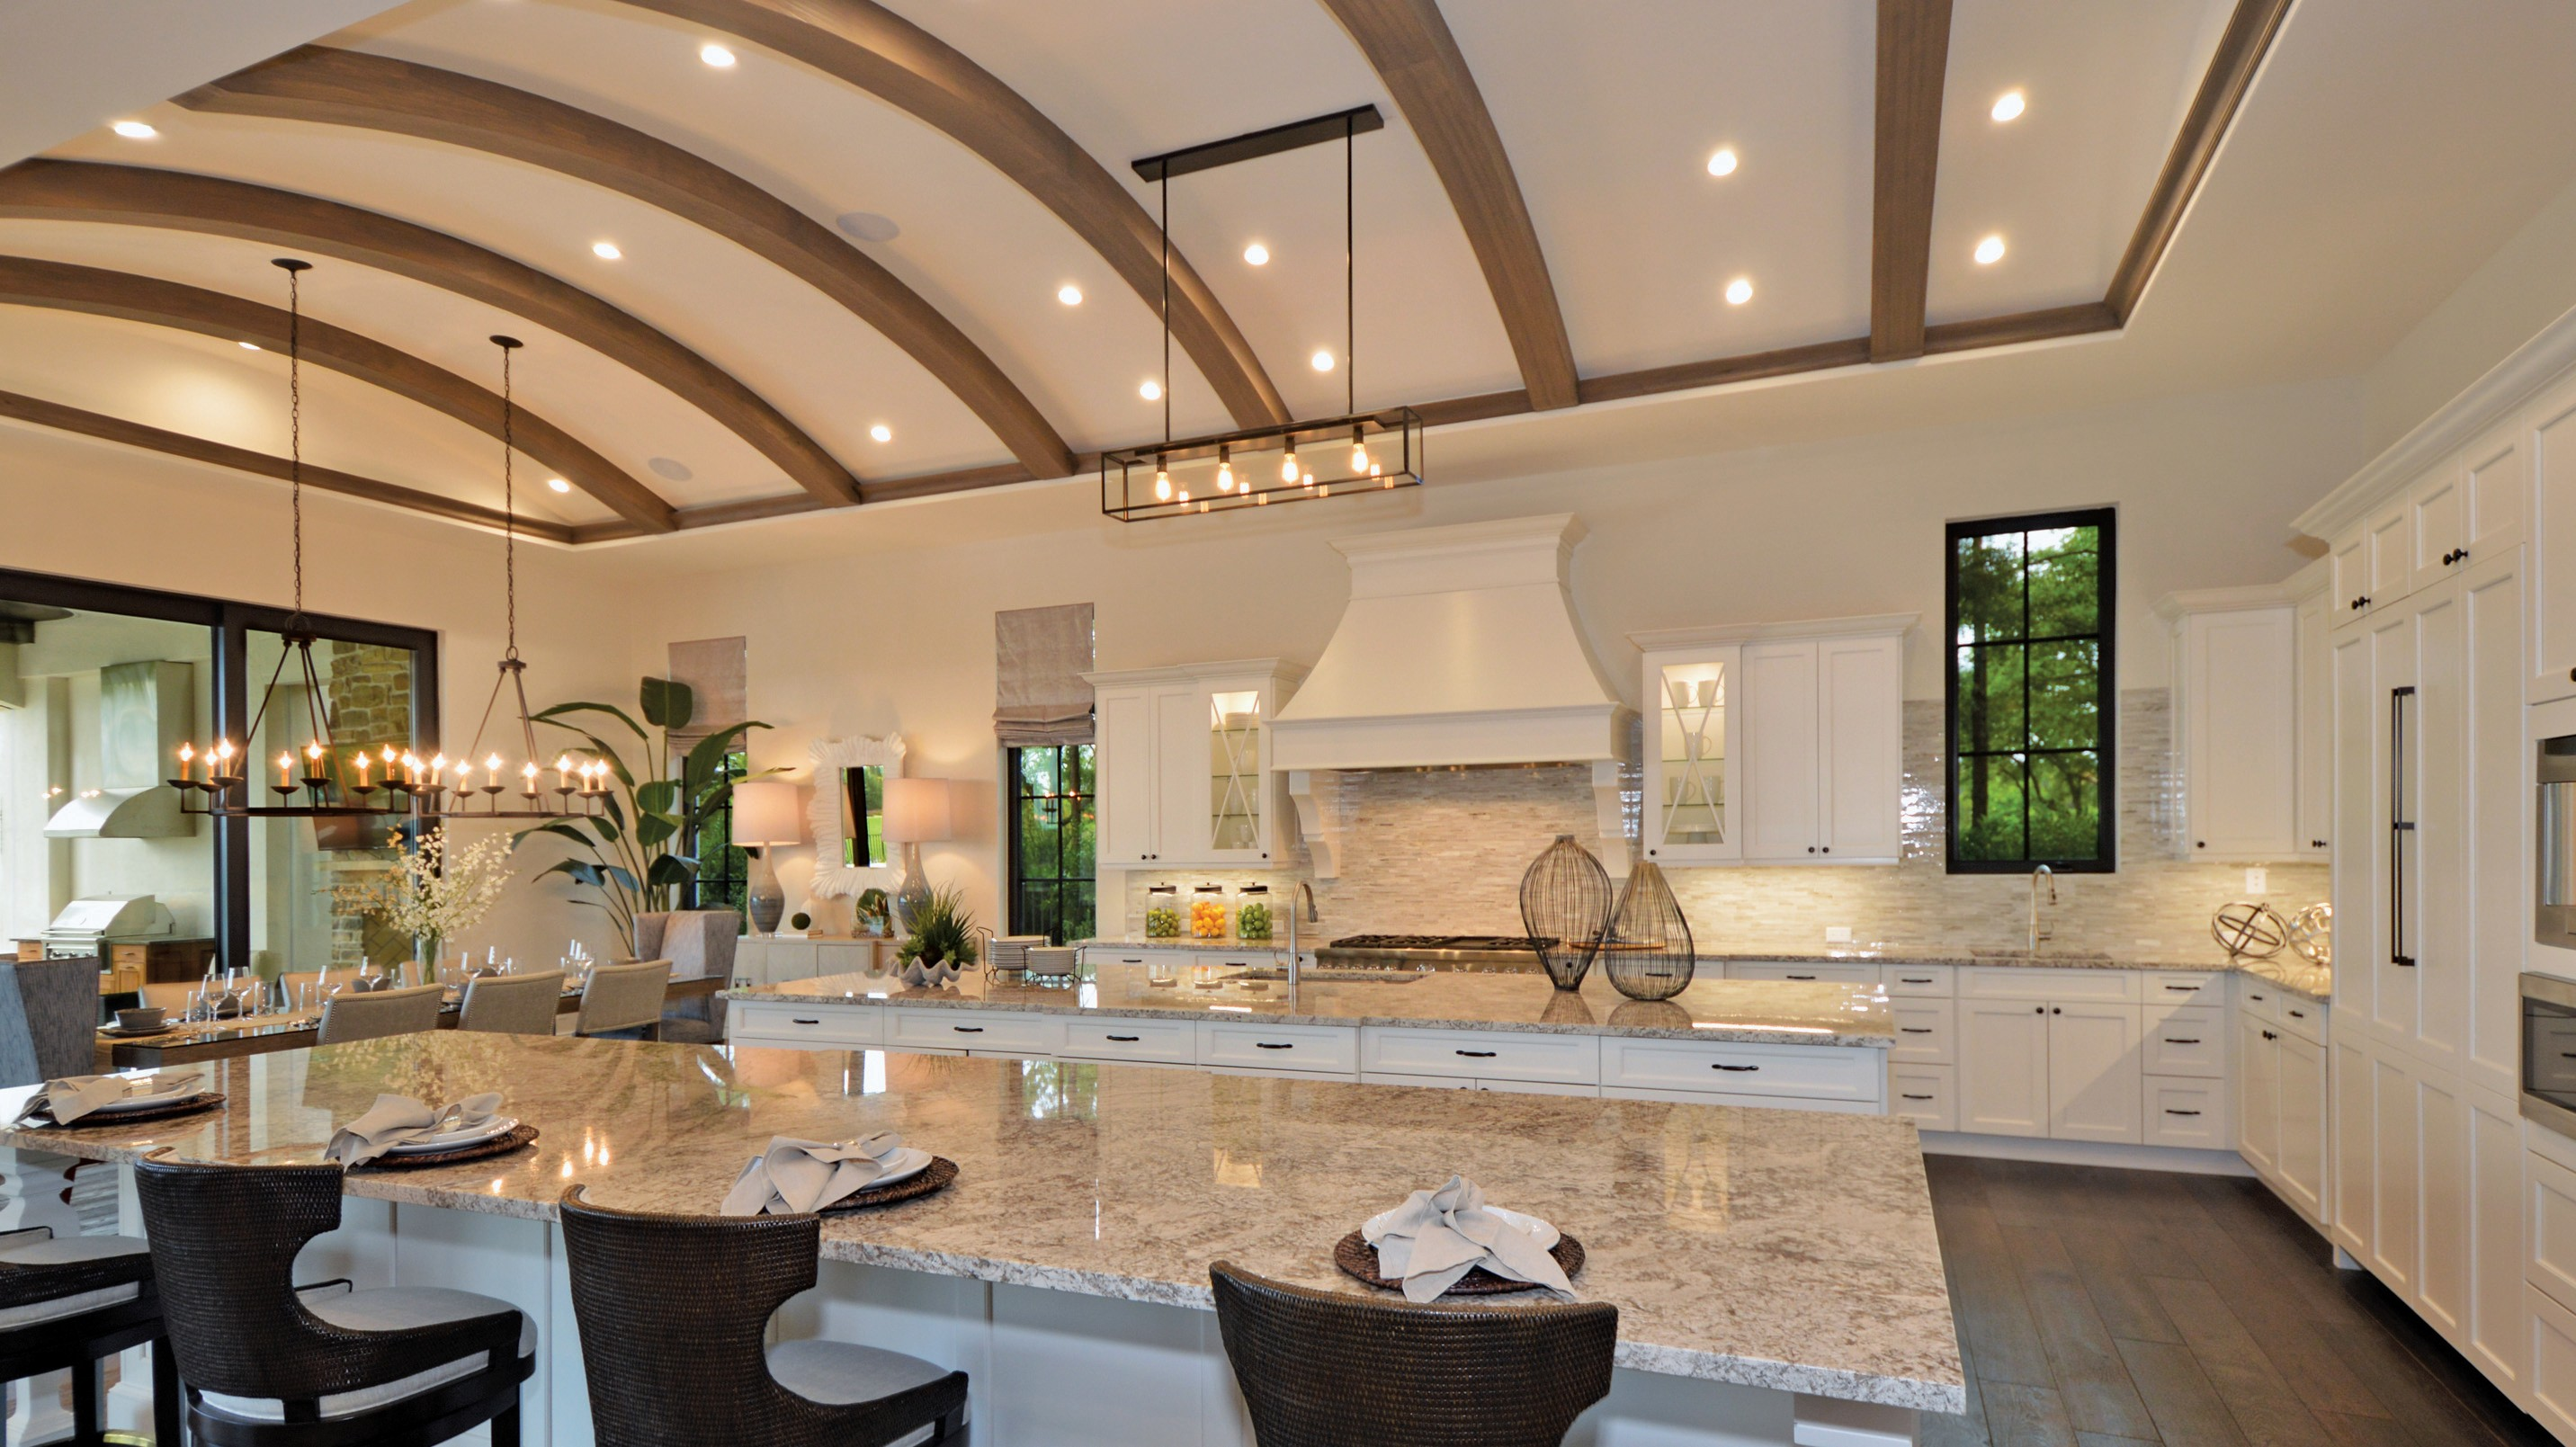 This weekend: Talis Park's Luxury Home Tour highlights award-winning homes,  new-fashioned lifestyle | Naples Florida Weekly